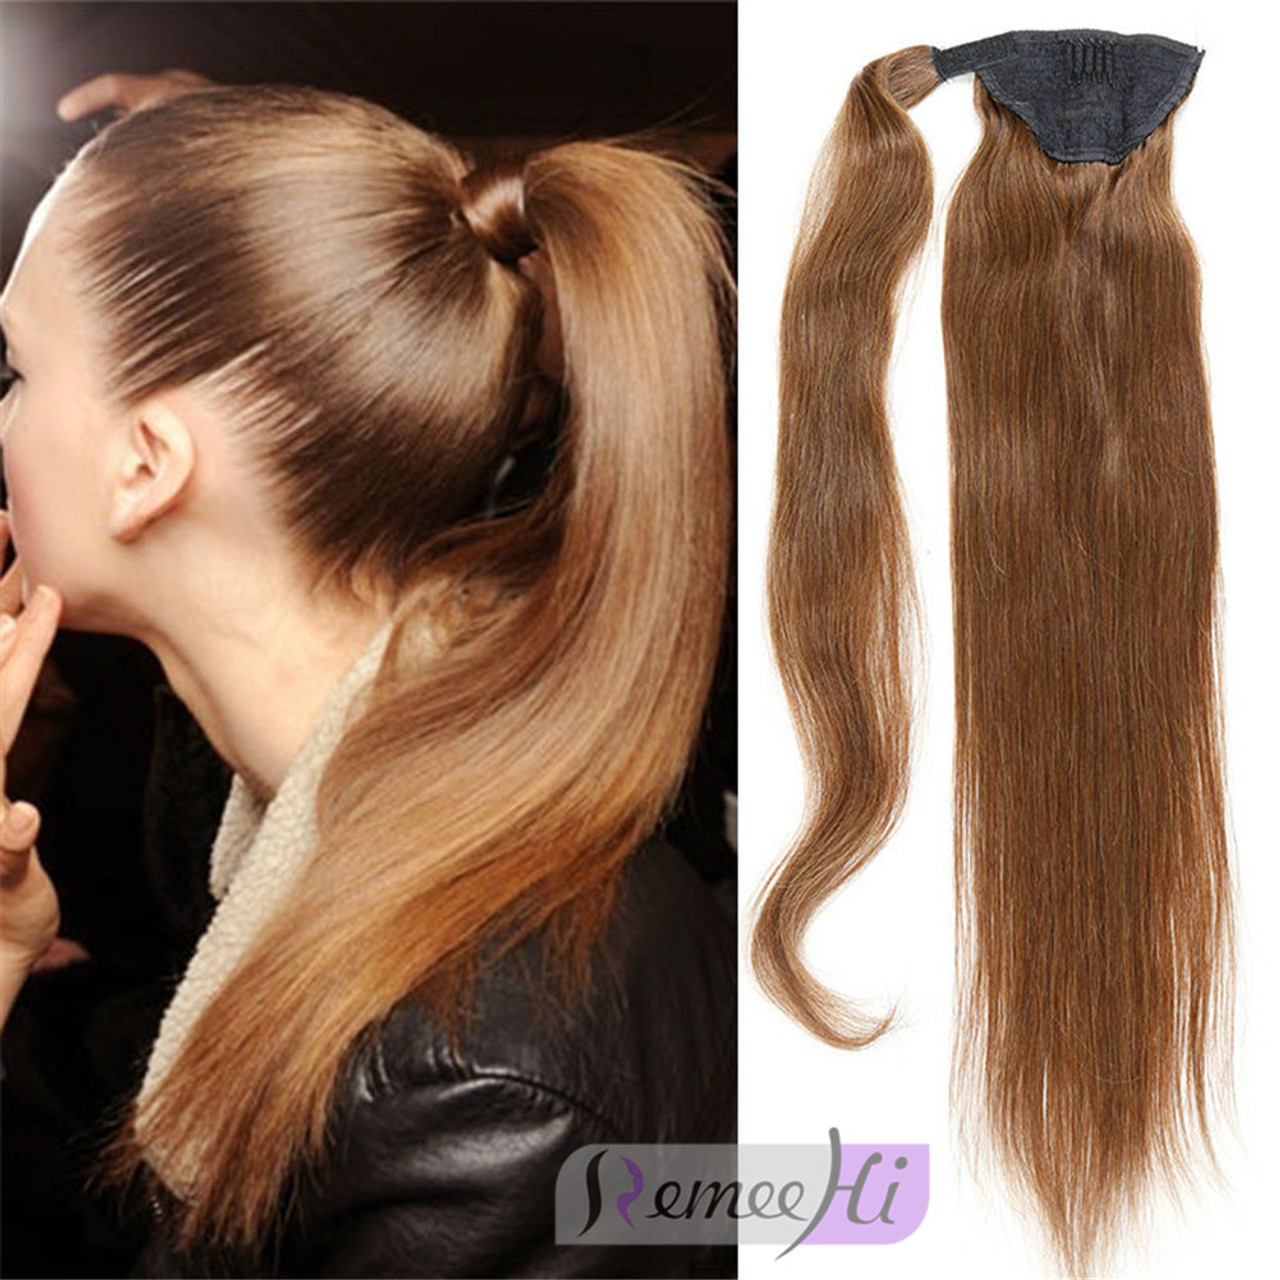 Remeehi Straight Remy Human Hair Clip Ponytails 120g Human Hair